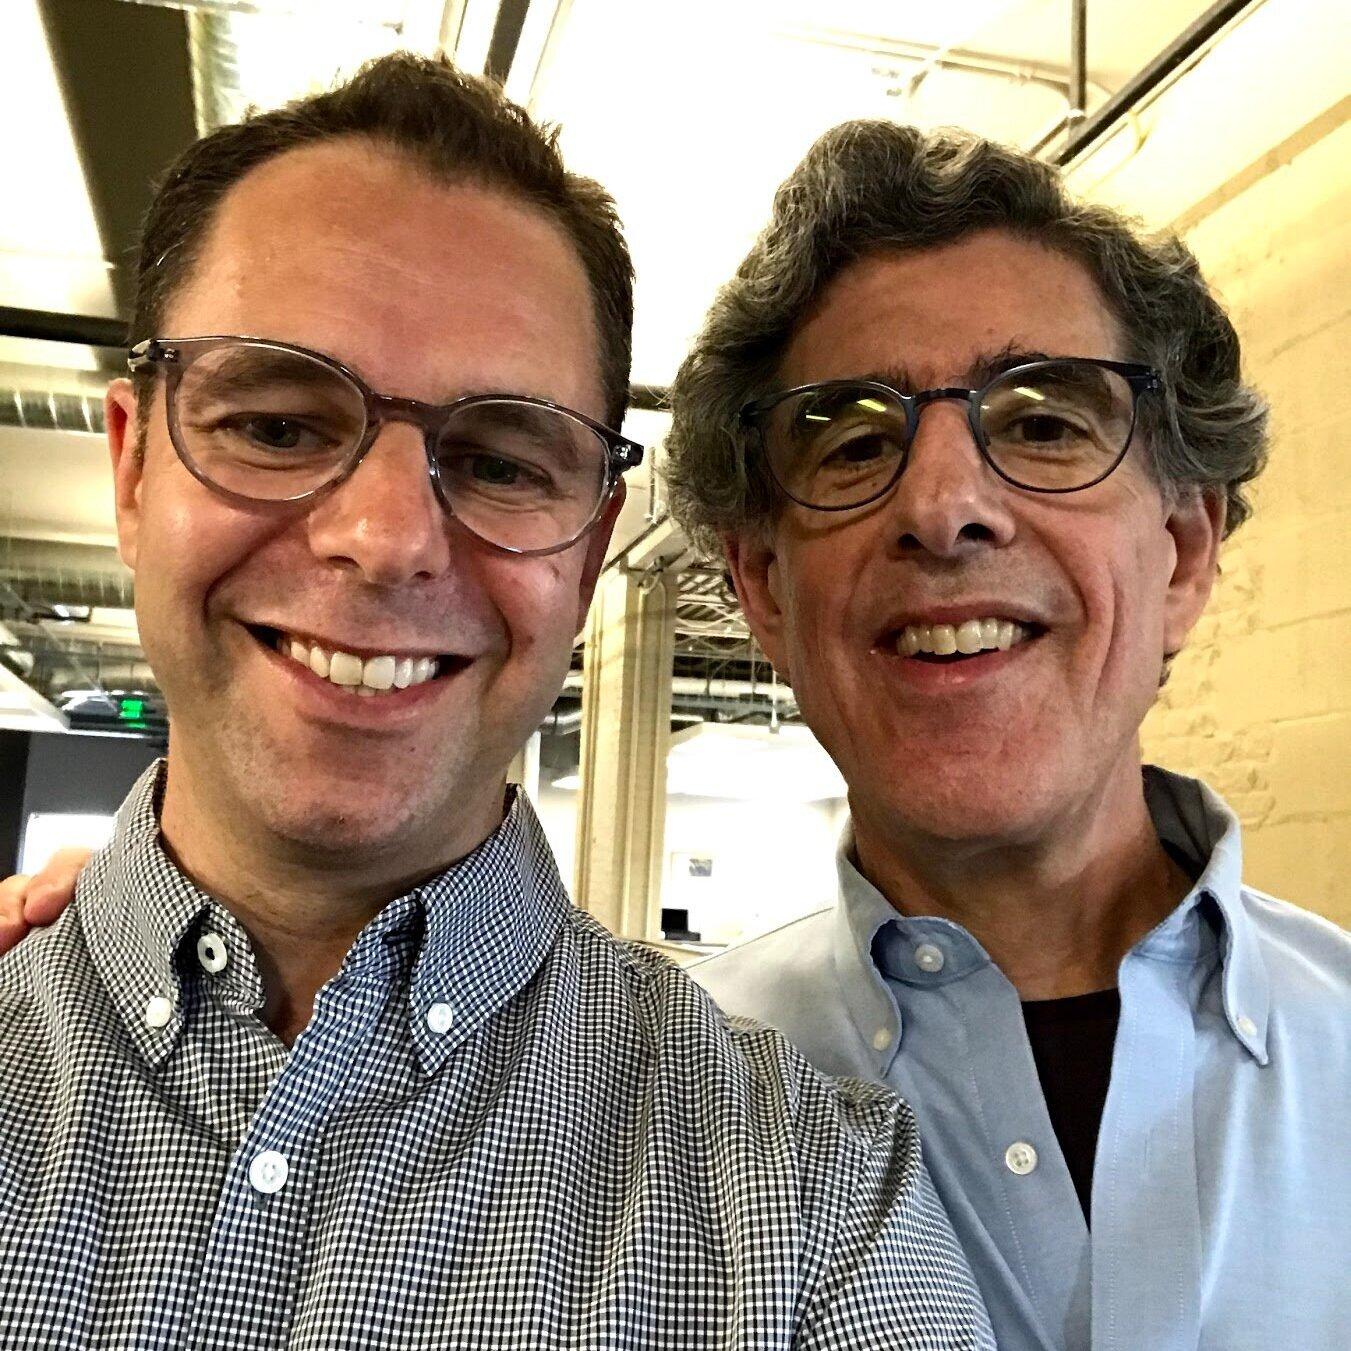 With RIchard Davidson, Madison, August 2019